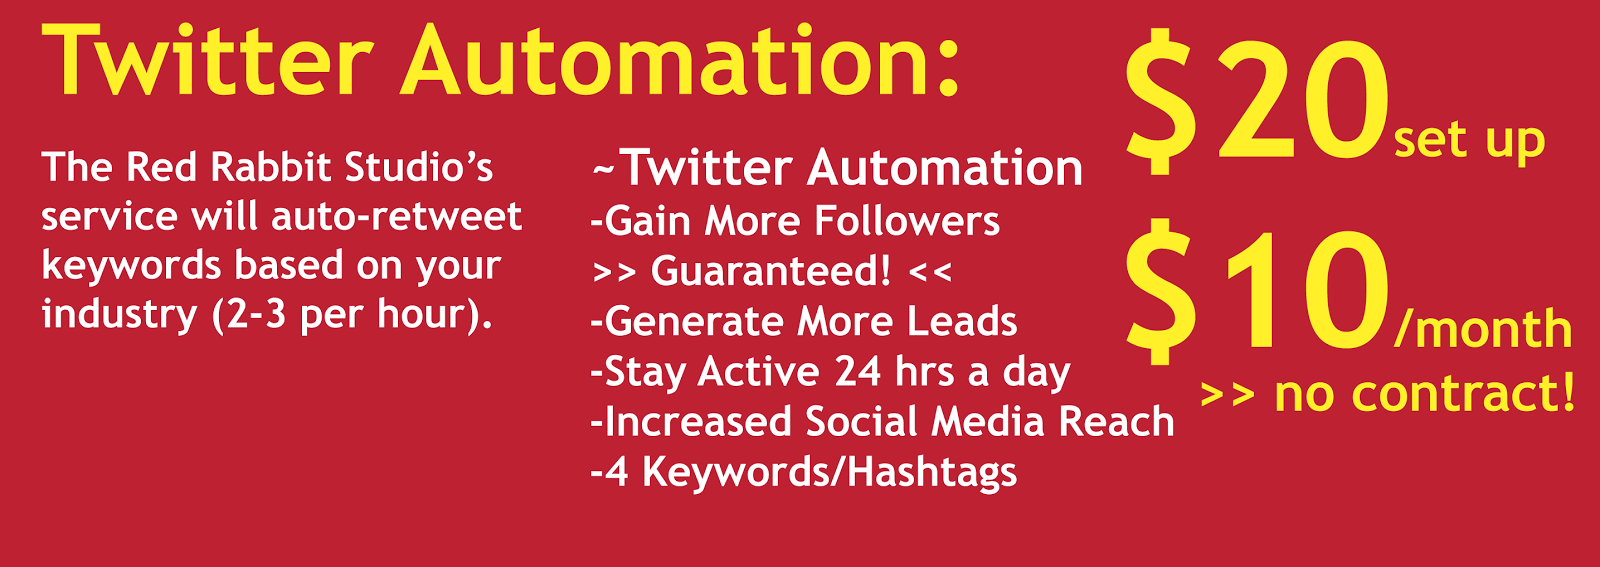 $10 per month and $20 set up, Twitter, Automation